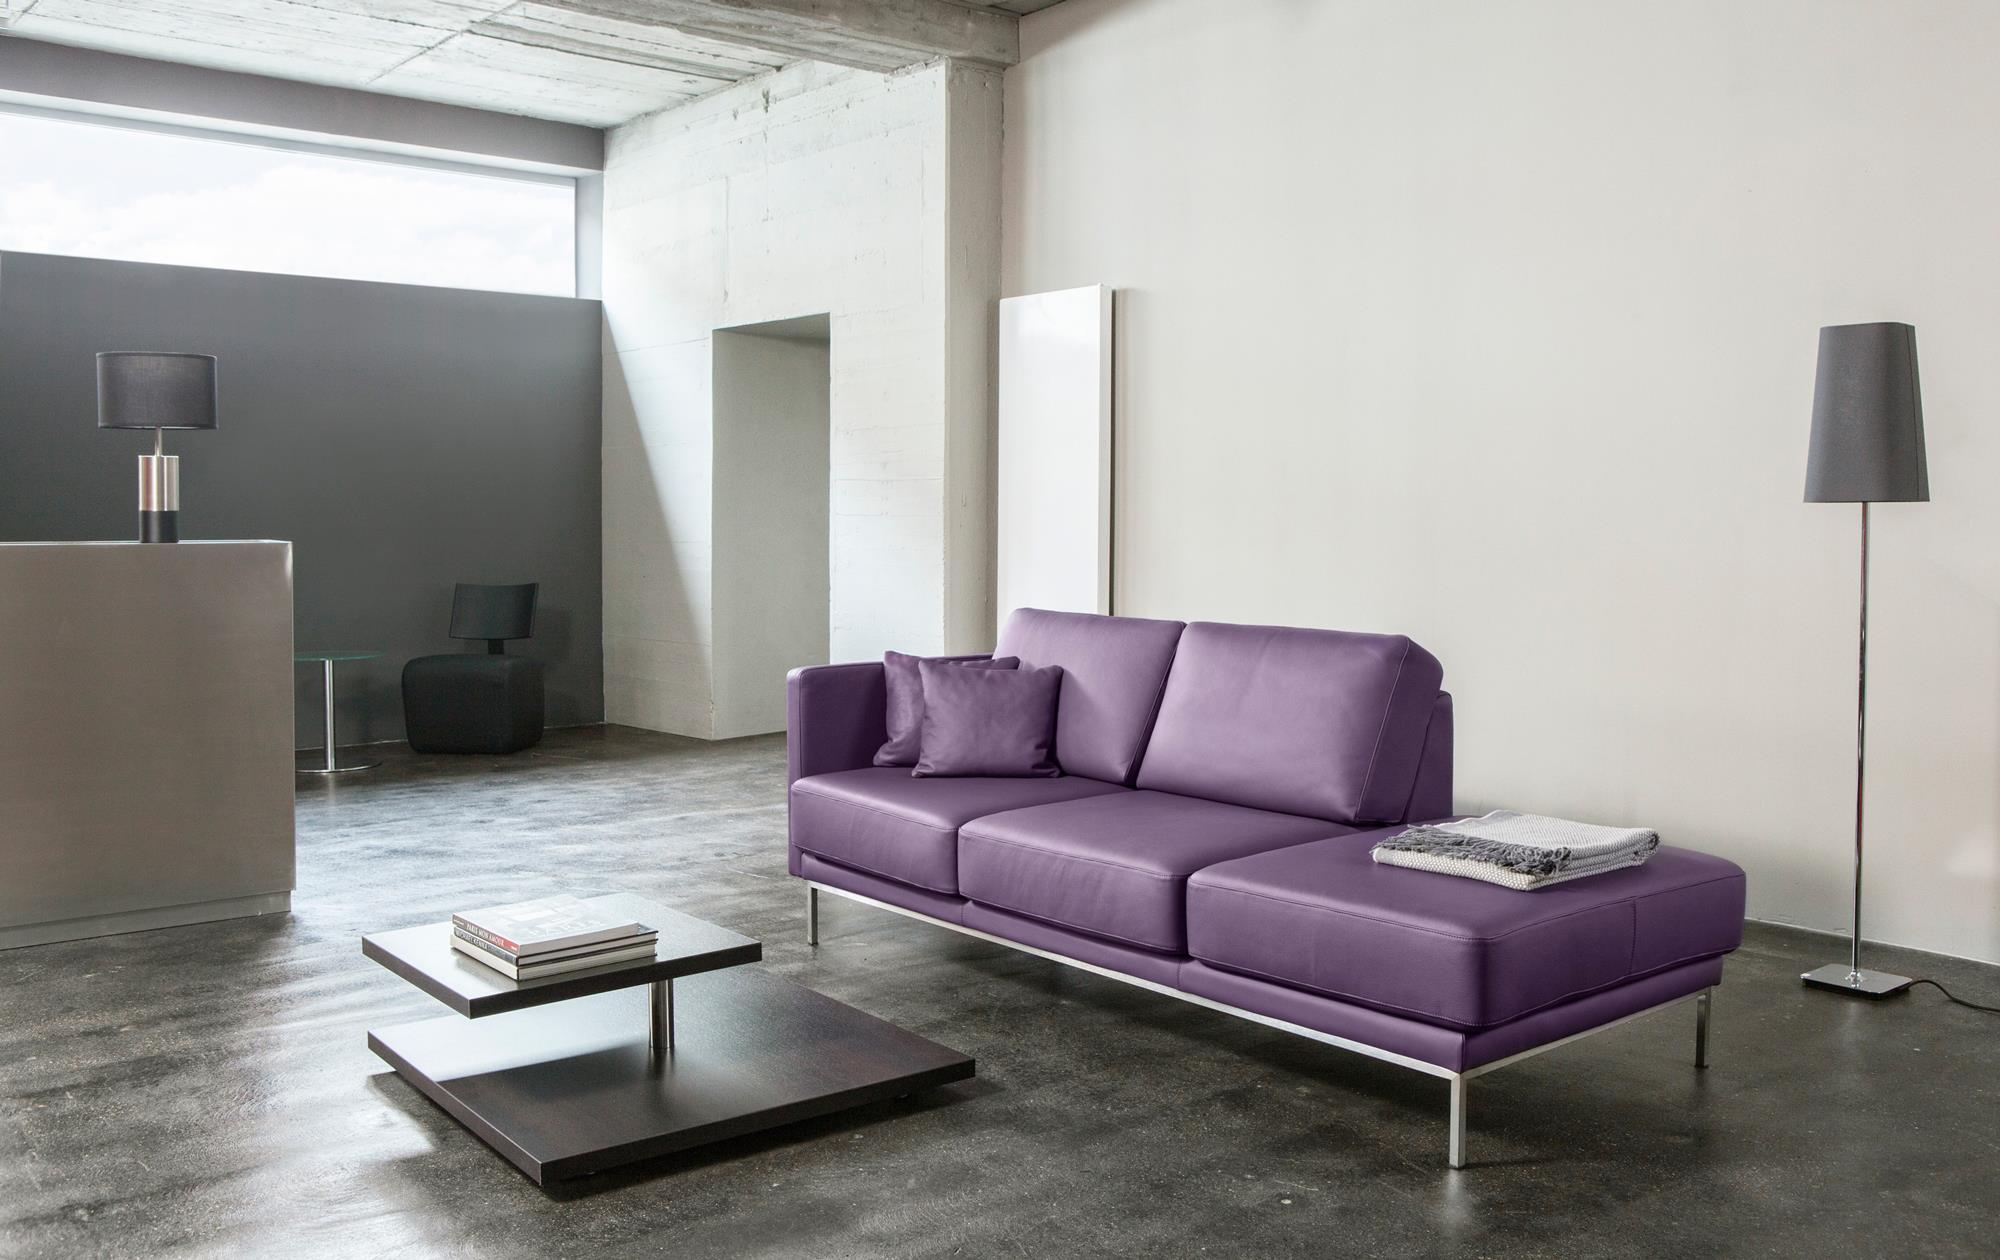 Sofa Hamburg Sofa Hamburg In Leder | Sessel-manufaktur.de